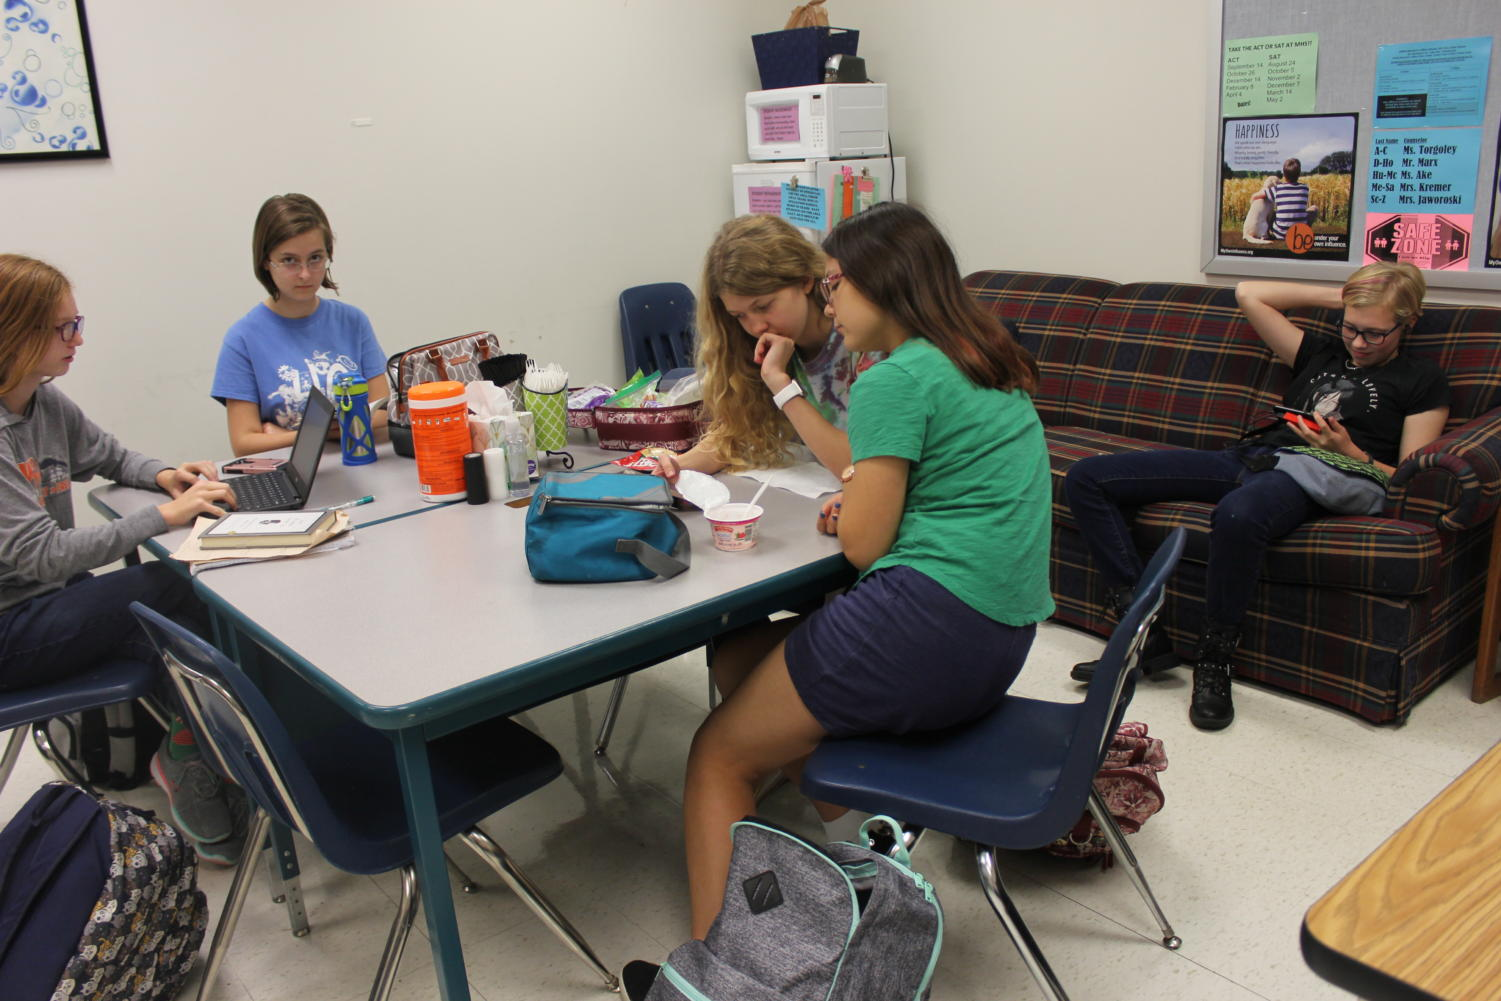 Mia Kreissler, junior; Lauren King, sophomore; and Ginger Ramirez, sophomore, eat lunch and read in the Gifted Room.